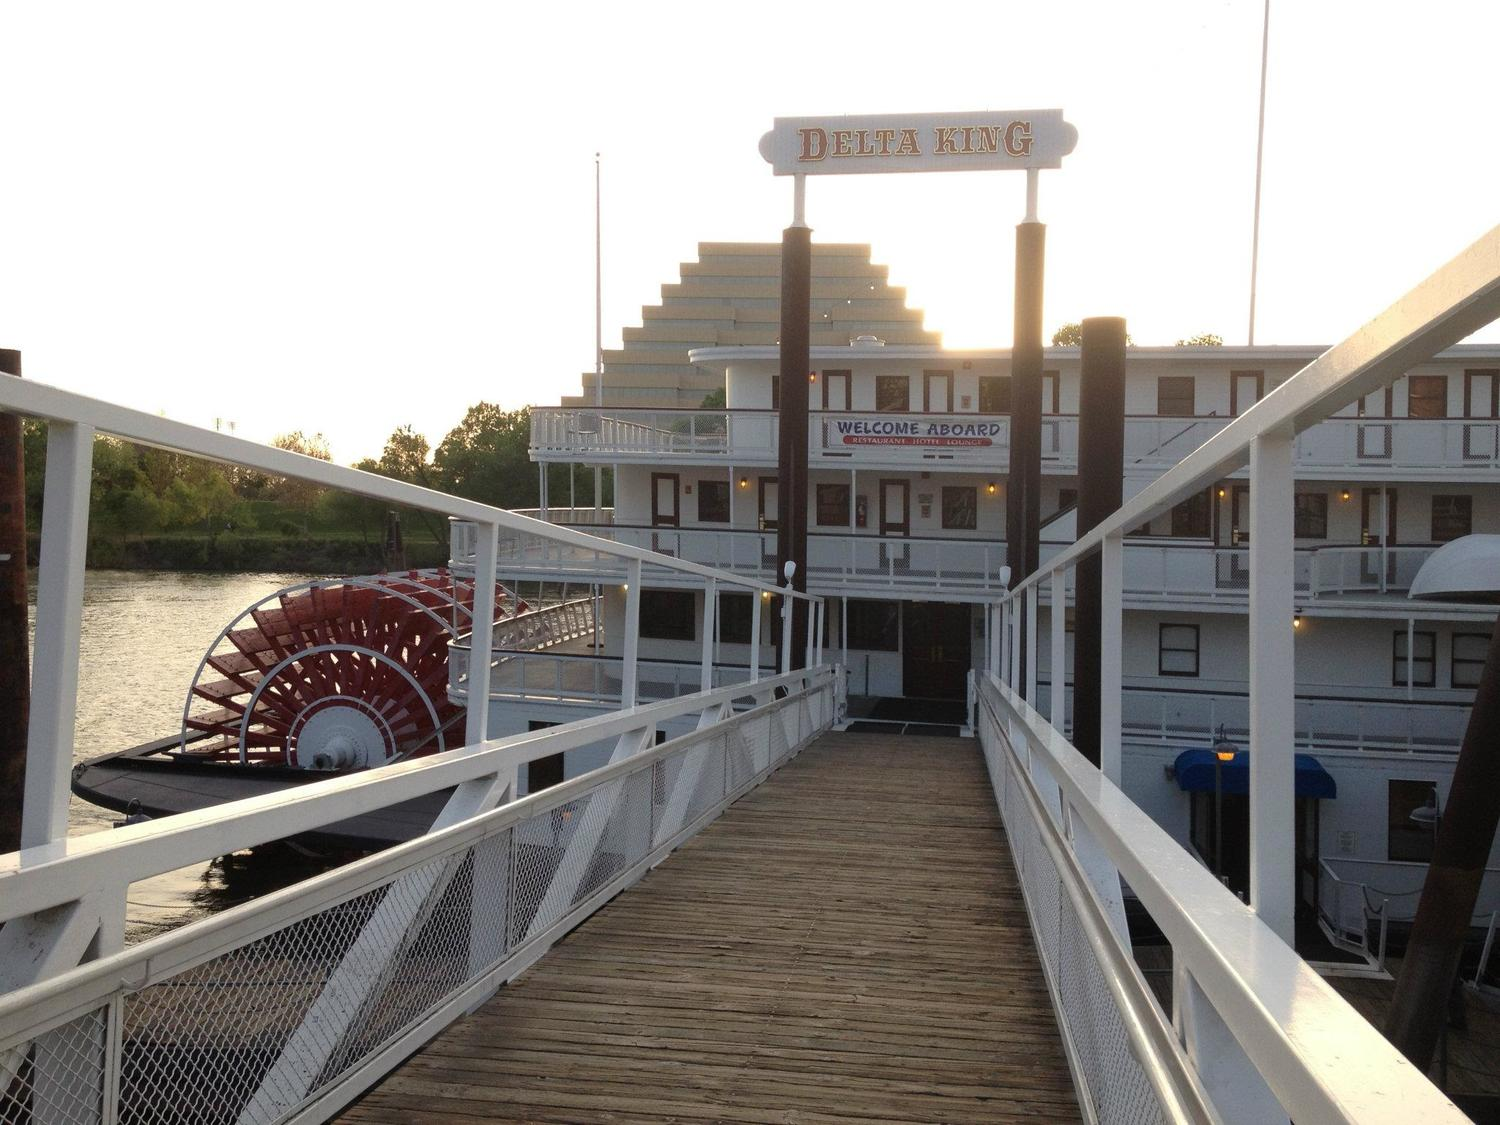 Co-writer Jayson Morgan had a chance to board the historic Delta King for the Sacramento International Film Festival.